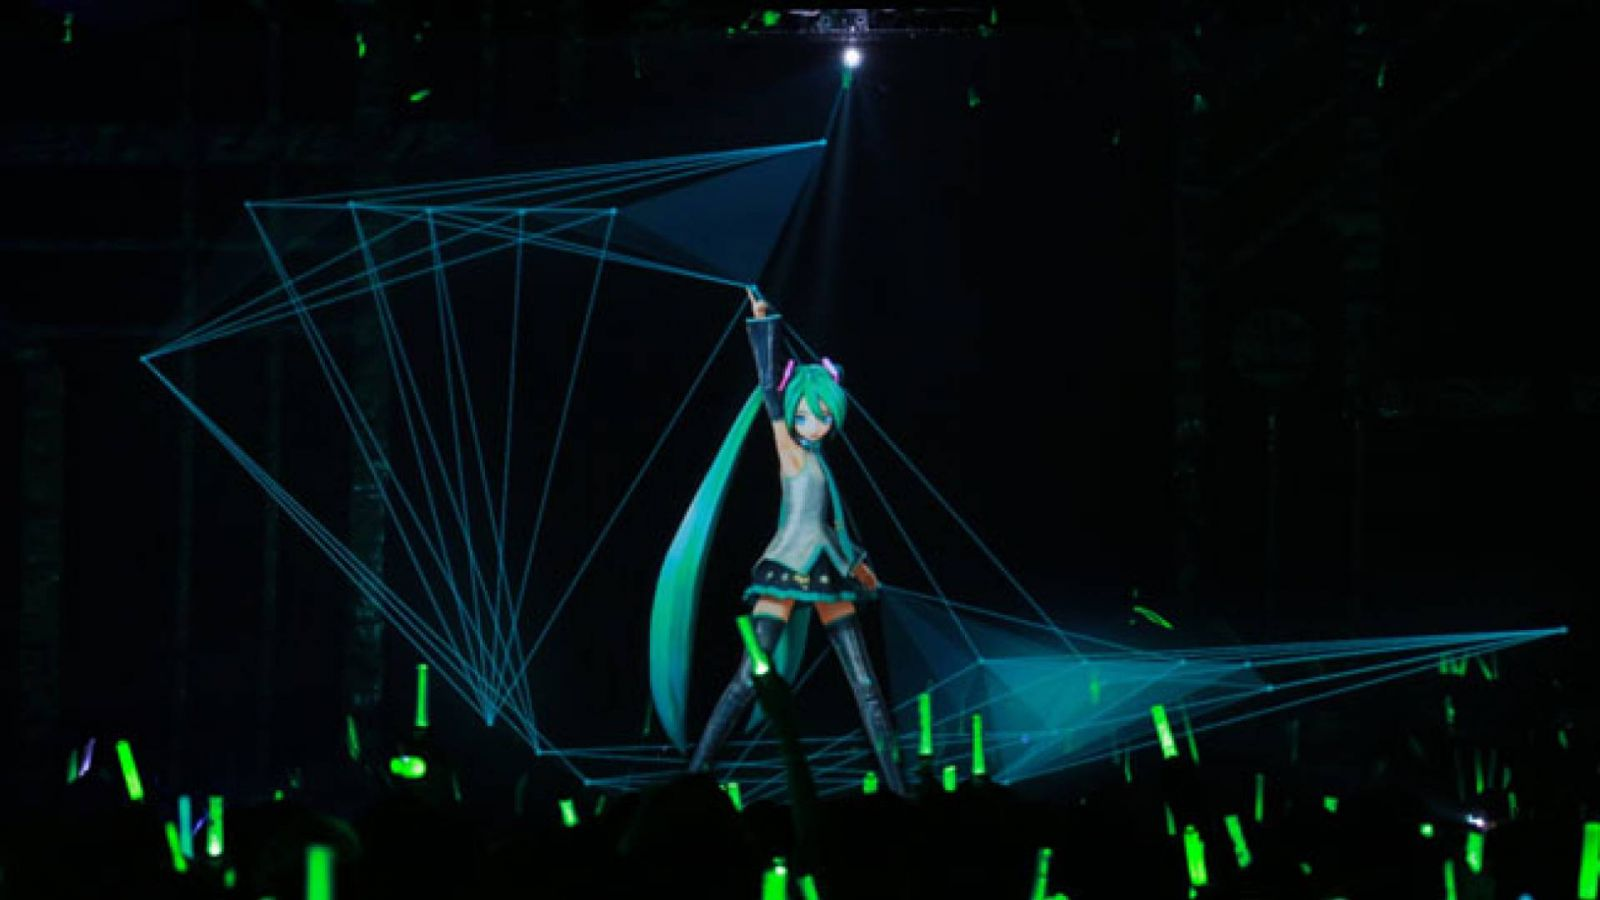 Hatsune Miku to Perform in Europe © KEI, Crypton Future Media, INC., piapro.net   provided by BB Promotion